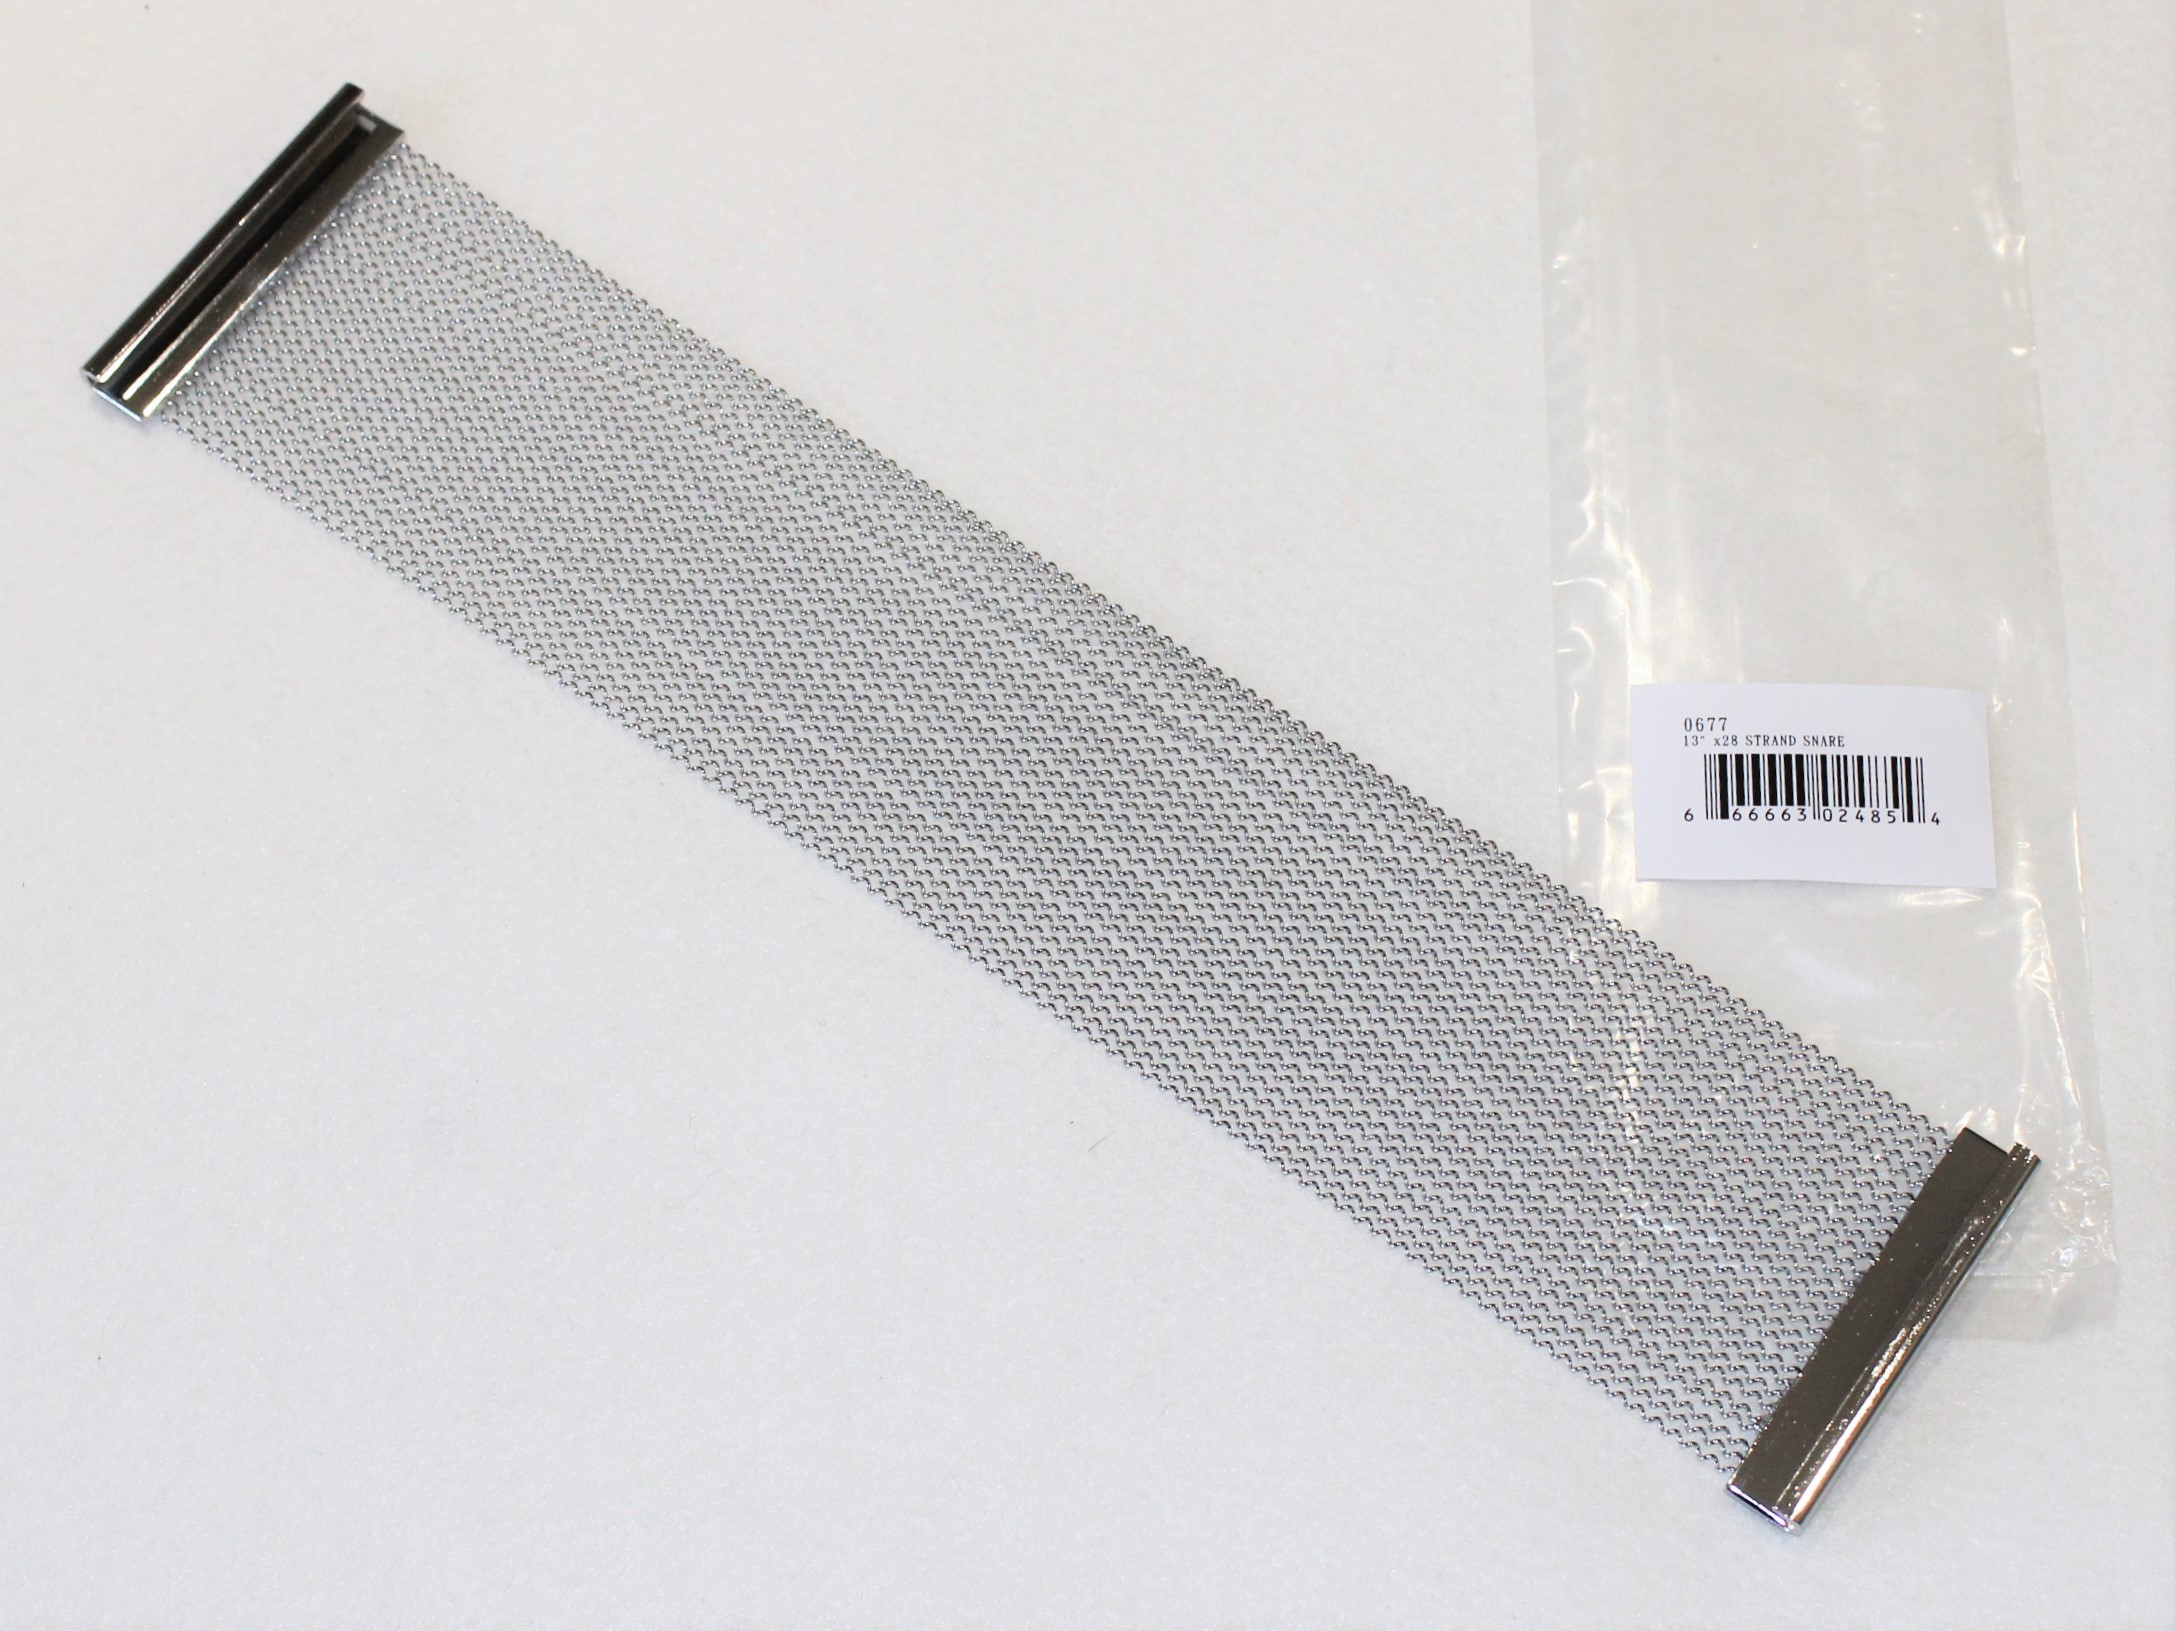 Premier 0677M Top (internal) Snare Wire for High Tension Series ...